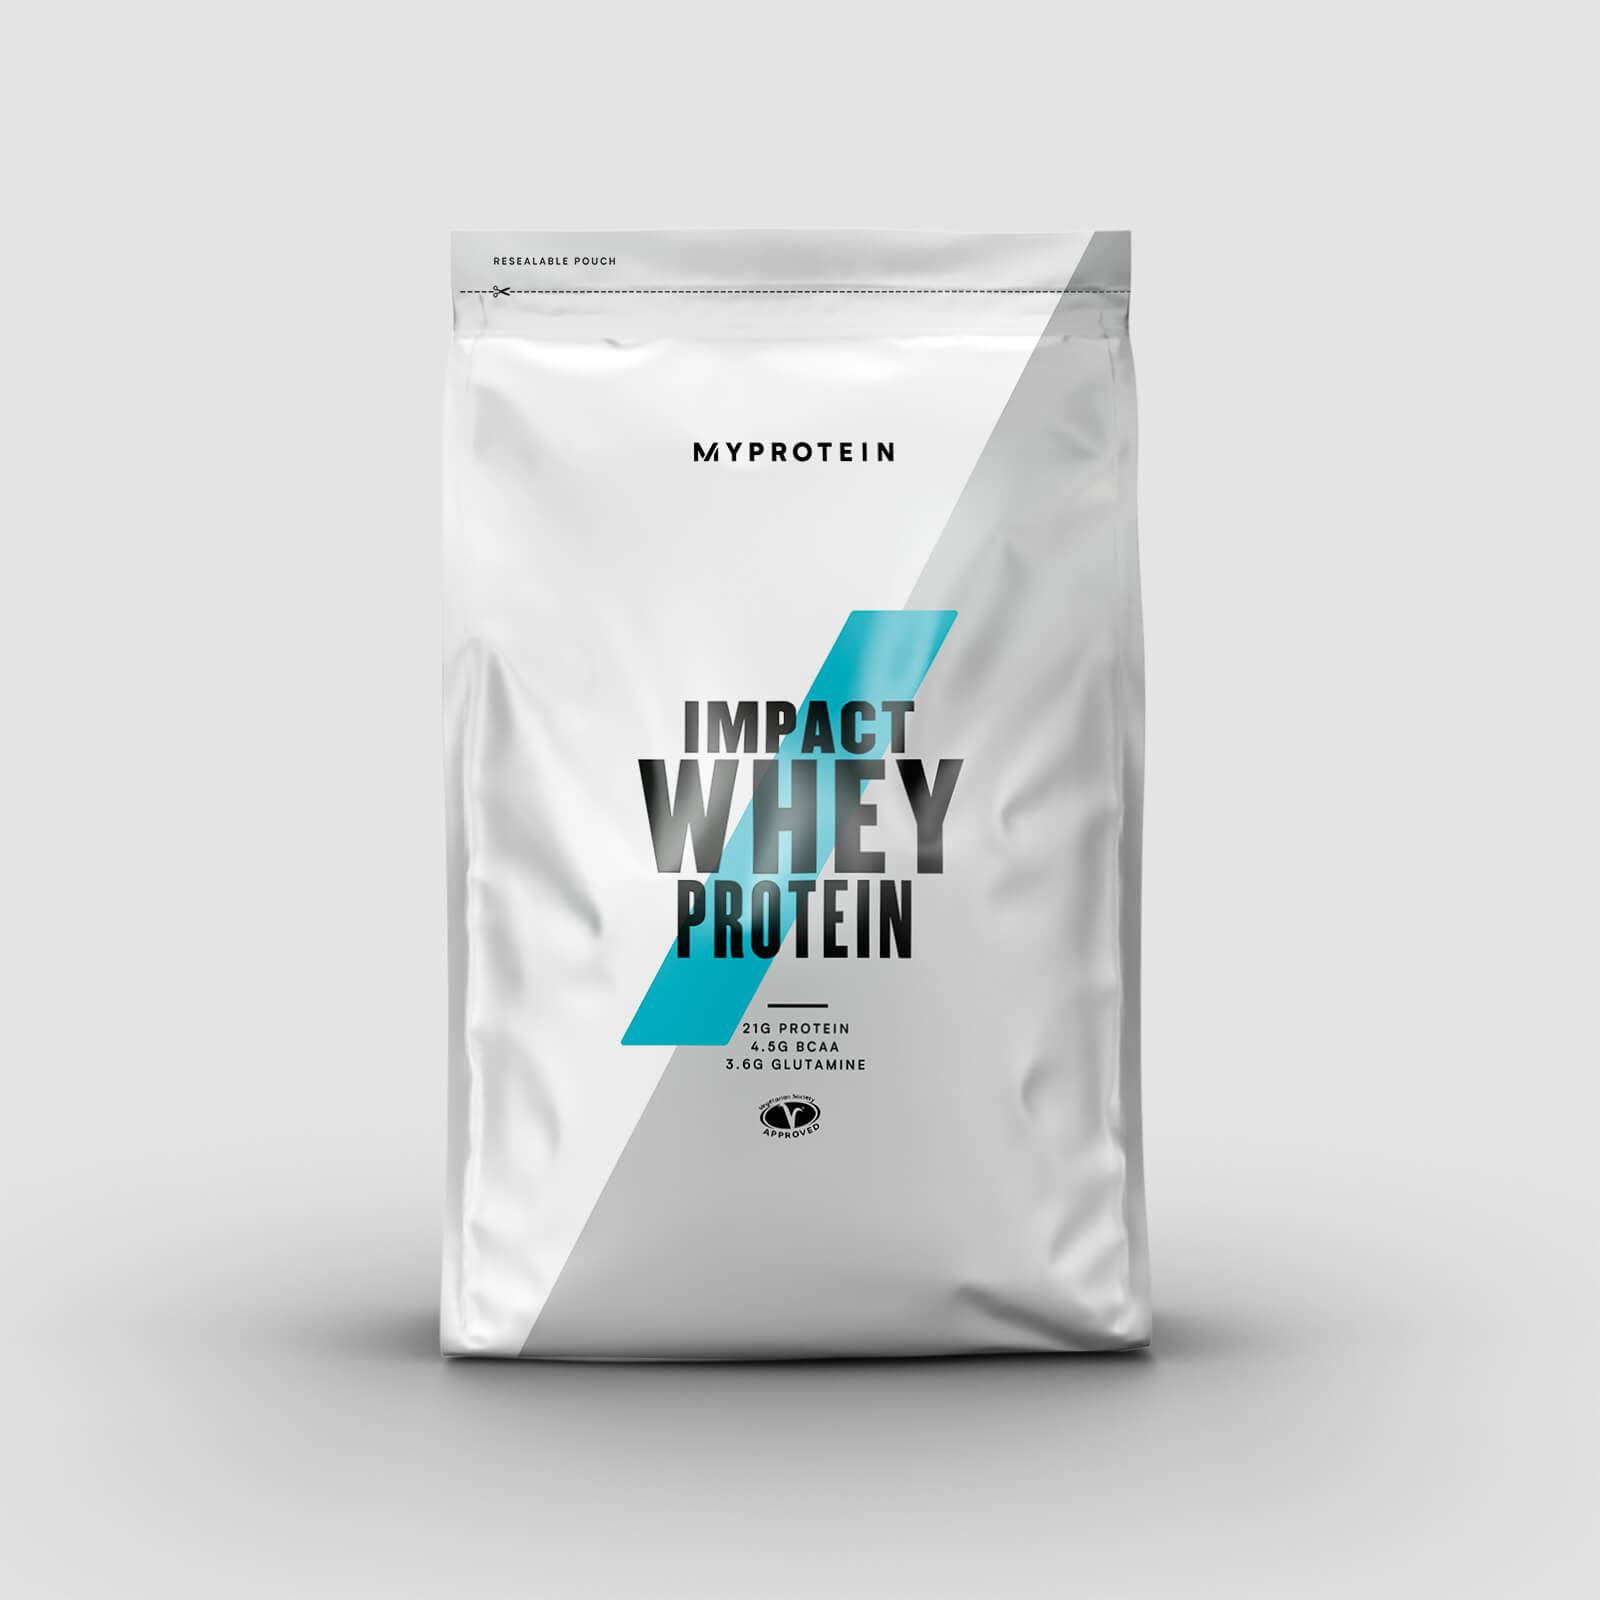 Myprotein Impact Whey Protein - 5kg - White Chocolate - New and Improved